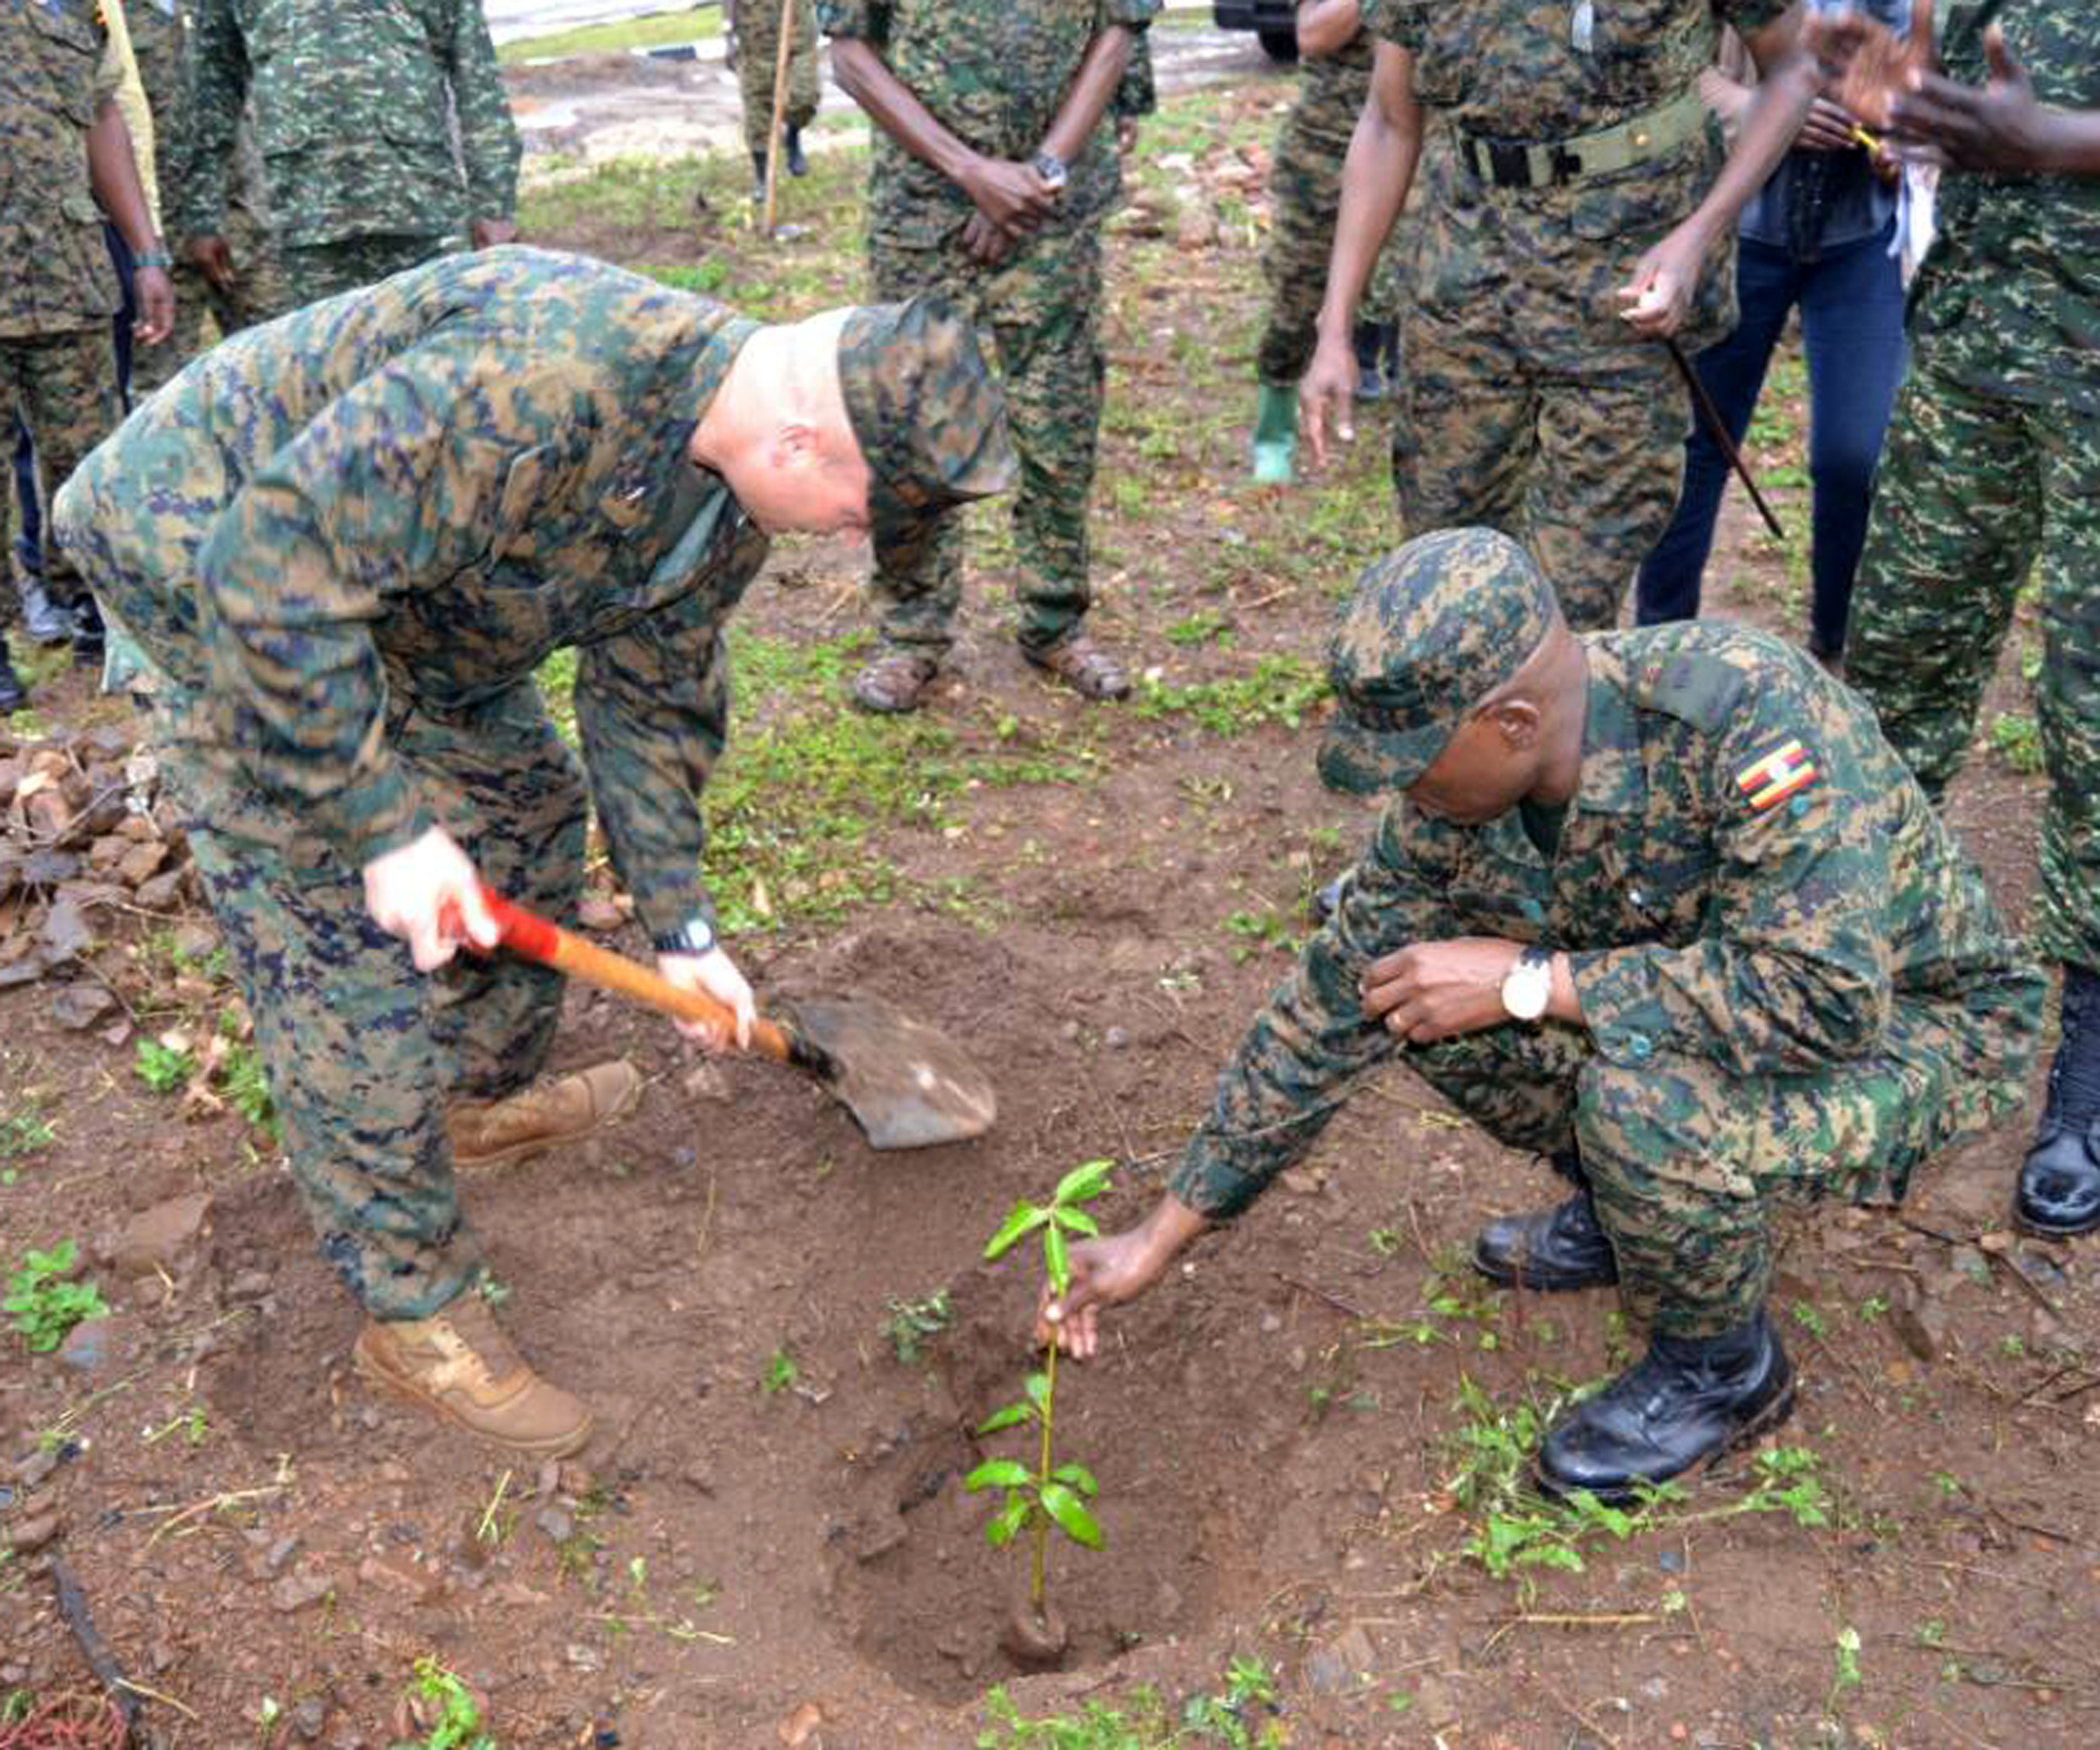 Combined Joint Task Force-Horn of Africa commander U.S. Marine Corps Brig. Gen. David Furness (left) helps to plant a mango tree during a tour of the Uganda Rapid Deployment Capability Center, based in Jinja, Uganda, July 7, 2017. This took place on the same day same day as an historic graduation of 60 UPDF engineers from Class 17.2, which was the first class where UPDF instructors both ran and taught the entire course. Class 17.2's training took place at the Uganda Rapid Deployment Capability Center. (Courtesy photo by Uganda Army Lt. Col. Nelson Aheebwa)